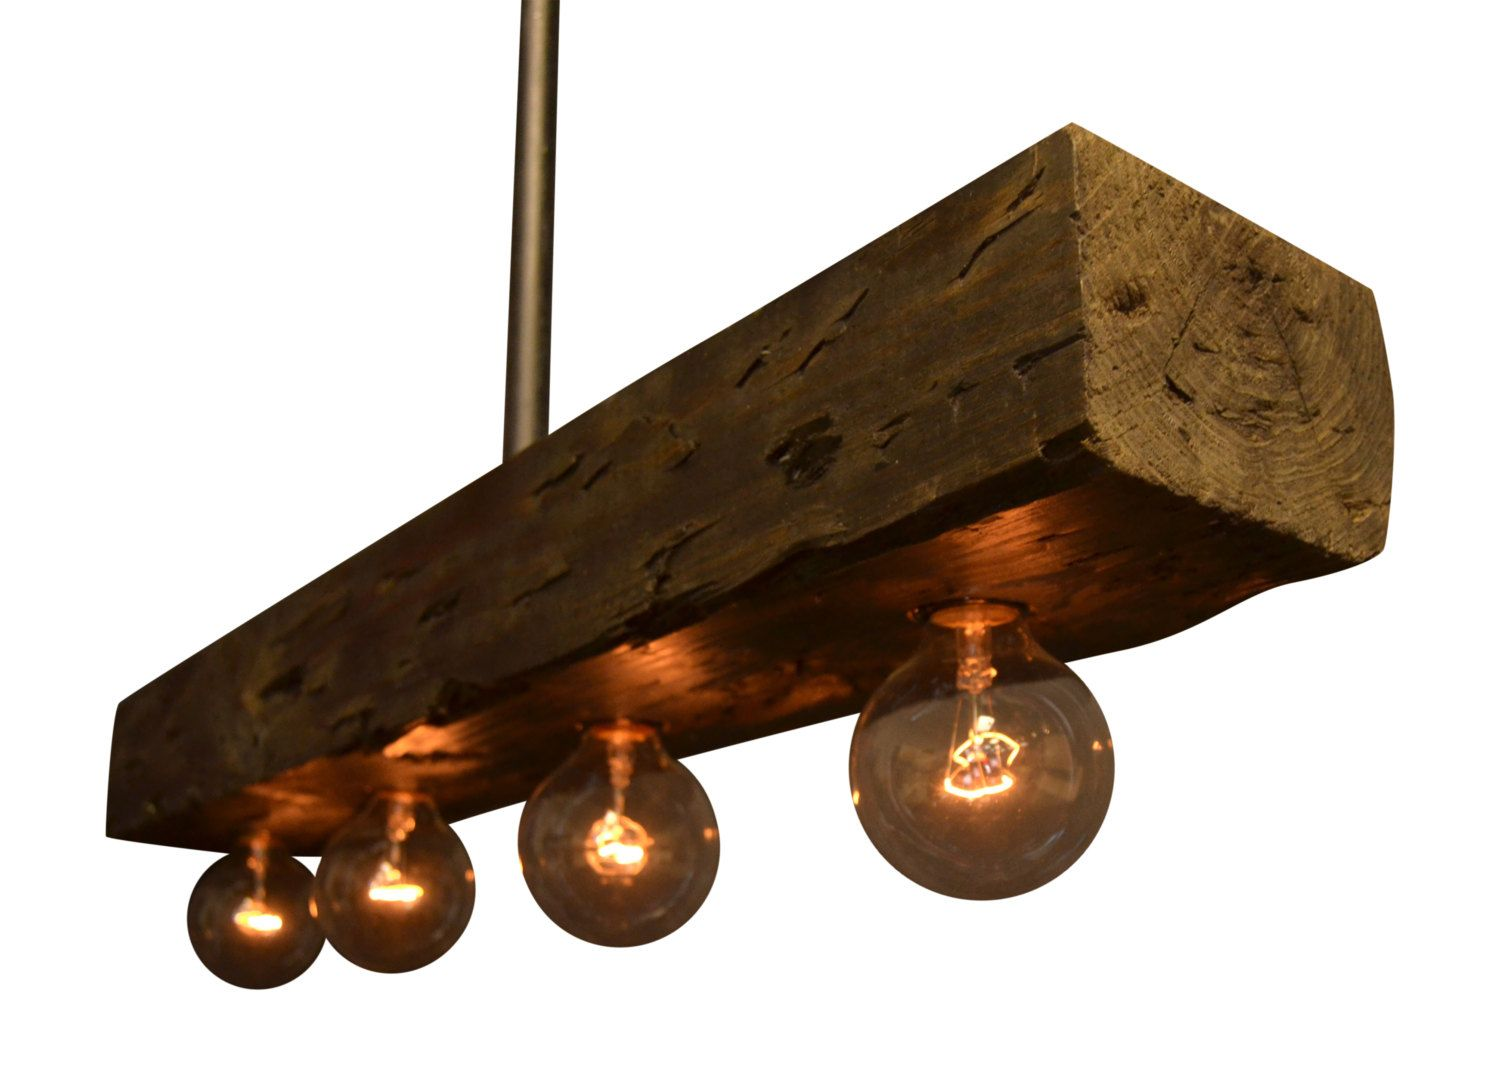 Reclaimed wood chandelier light fixture farm light country reclaimed wood chandelier light fixture by unionhilironworks arubaitofo Image collections